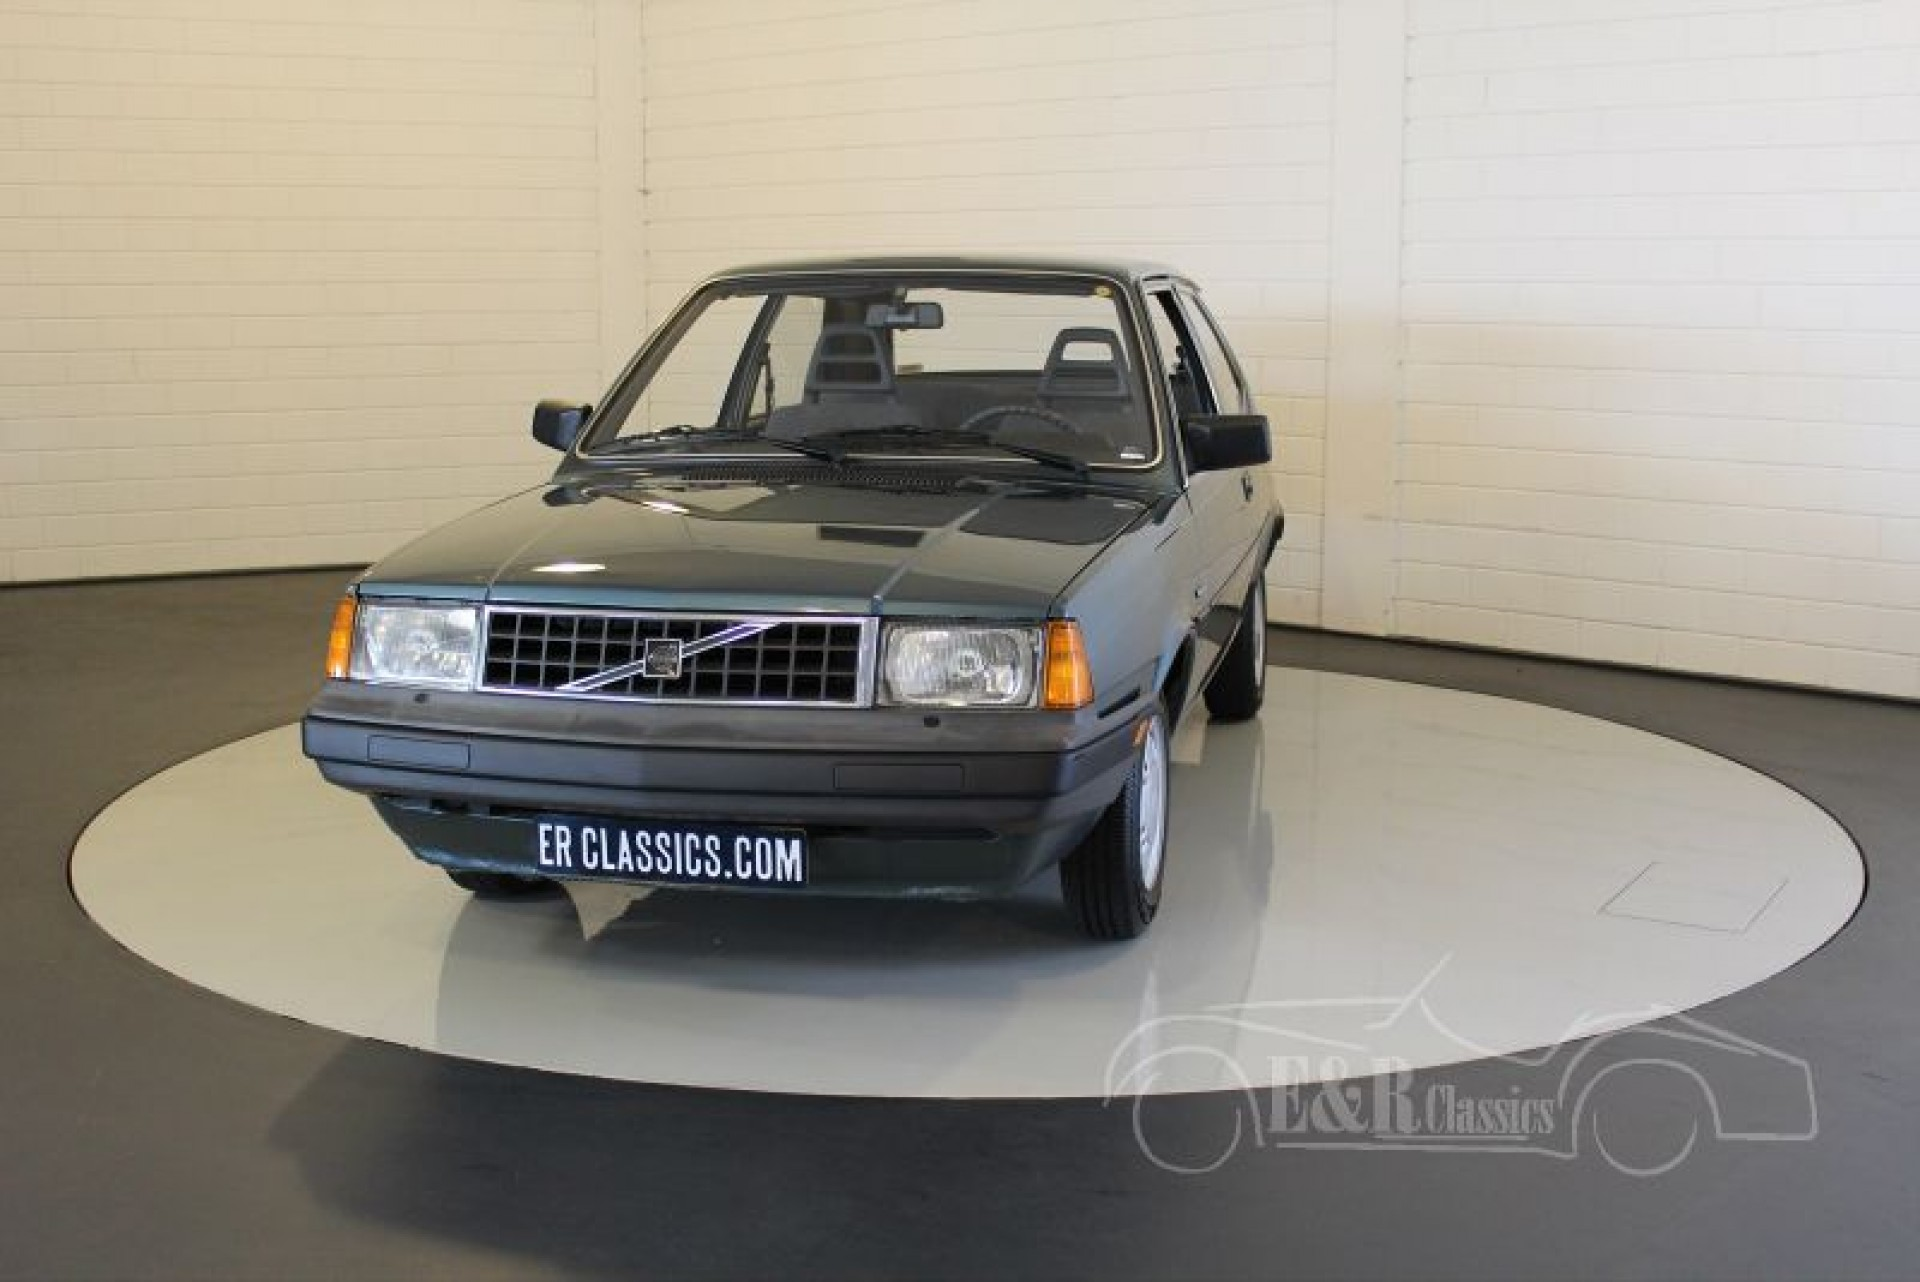 Volvo 340 DL 1988 for sale at ERclassics